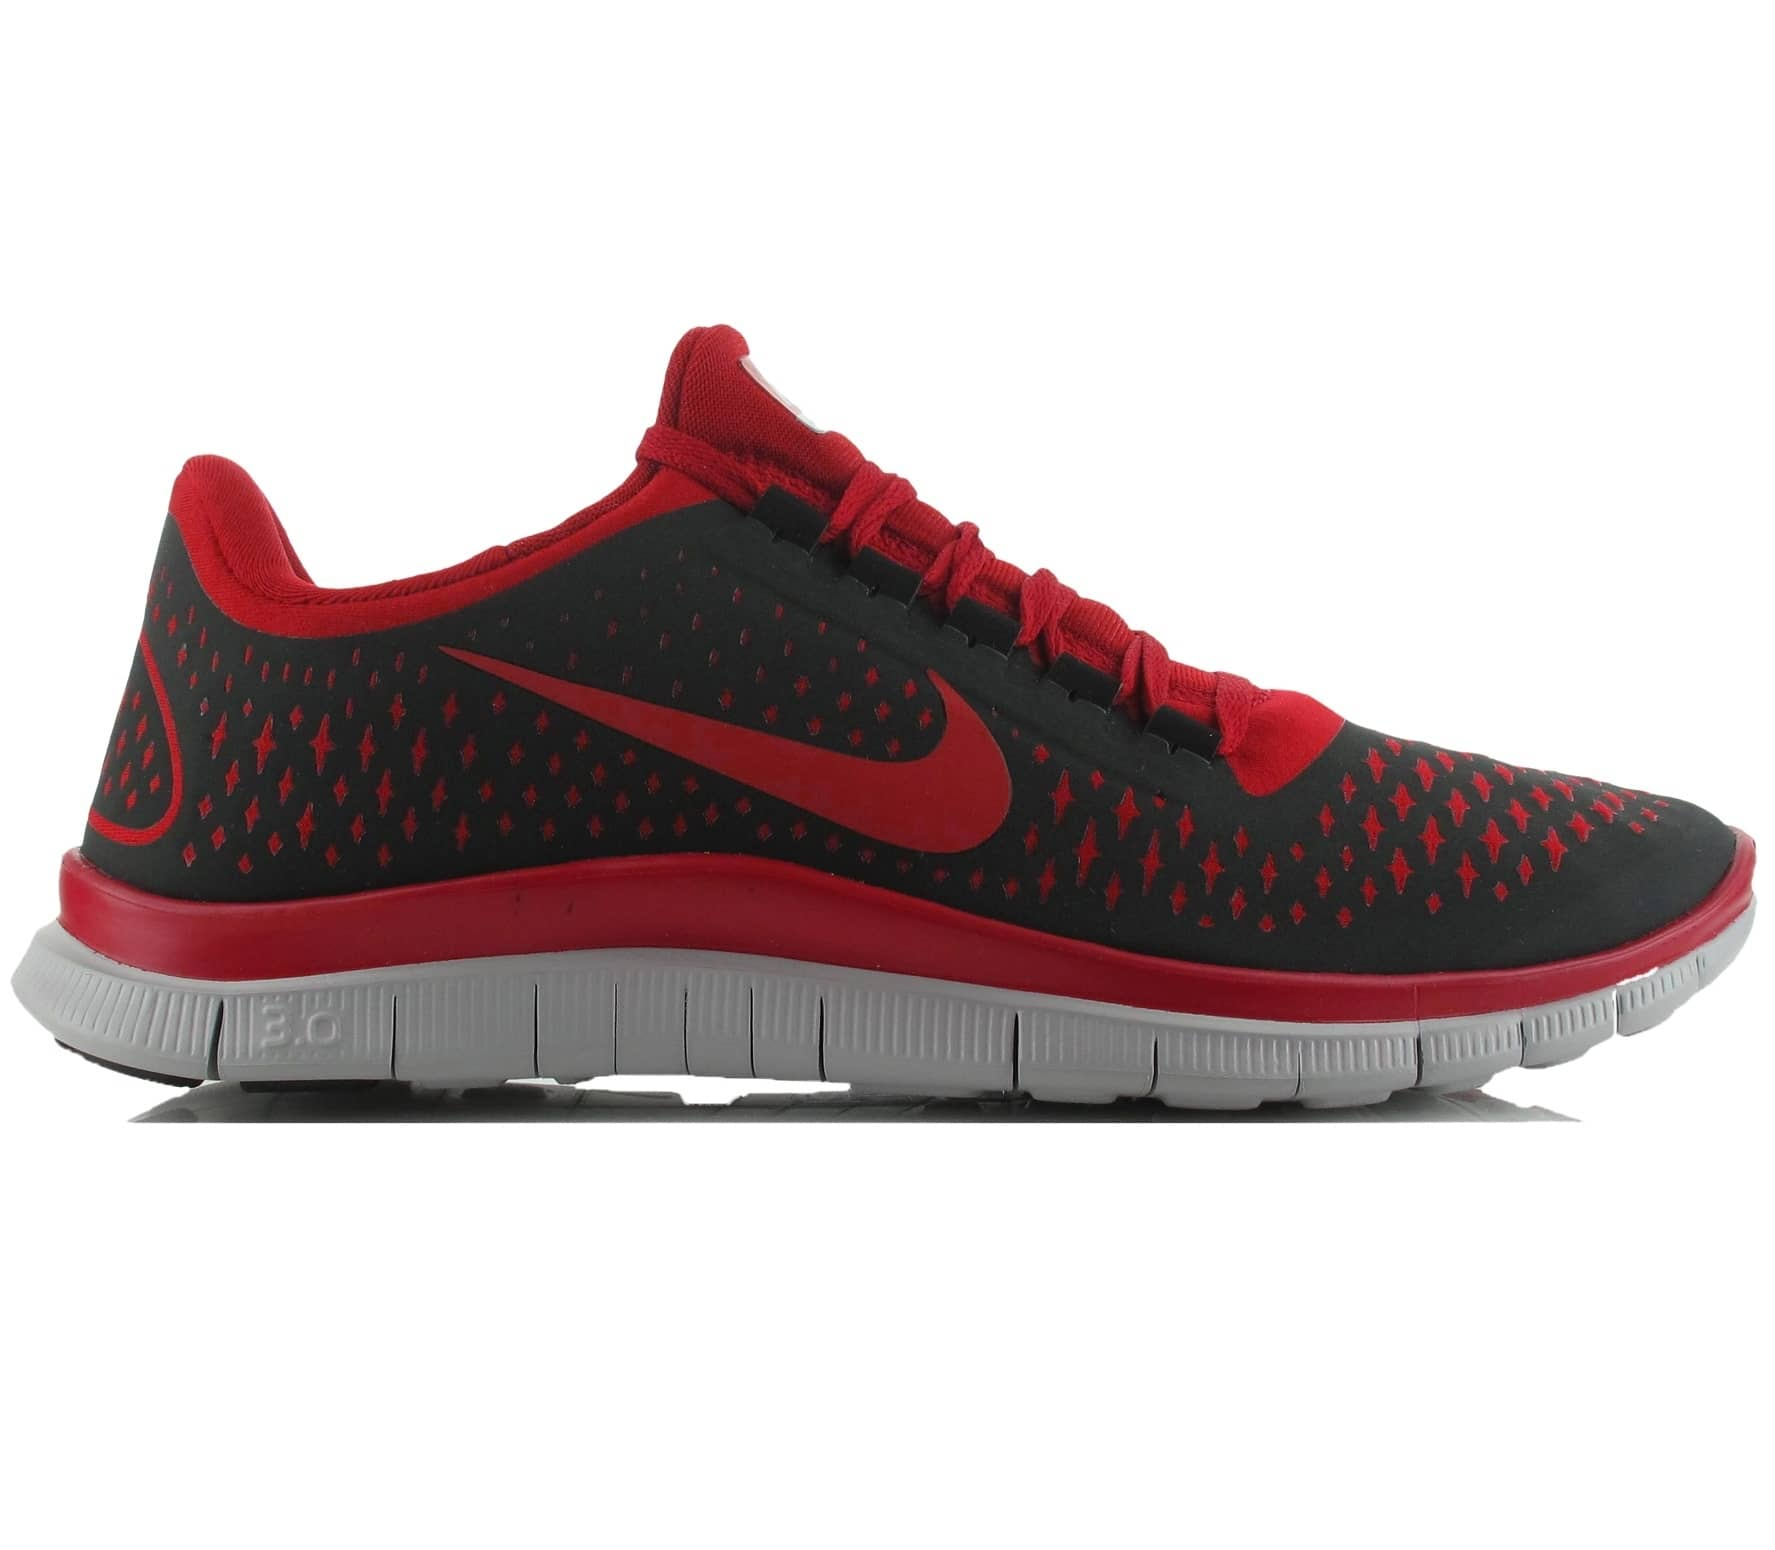 detailed look 5e16c 8e860 Nike - running shoes Free Run 3.0 V4 - HO12